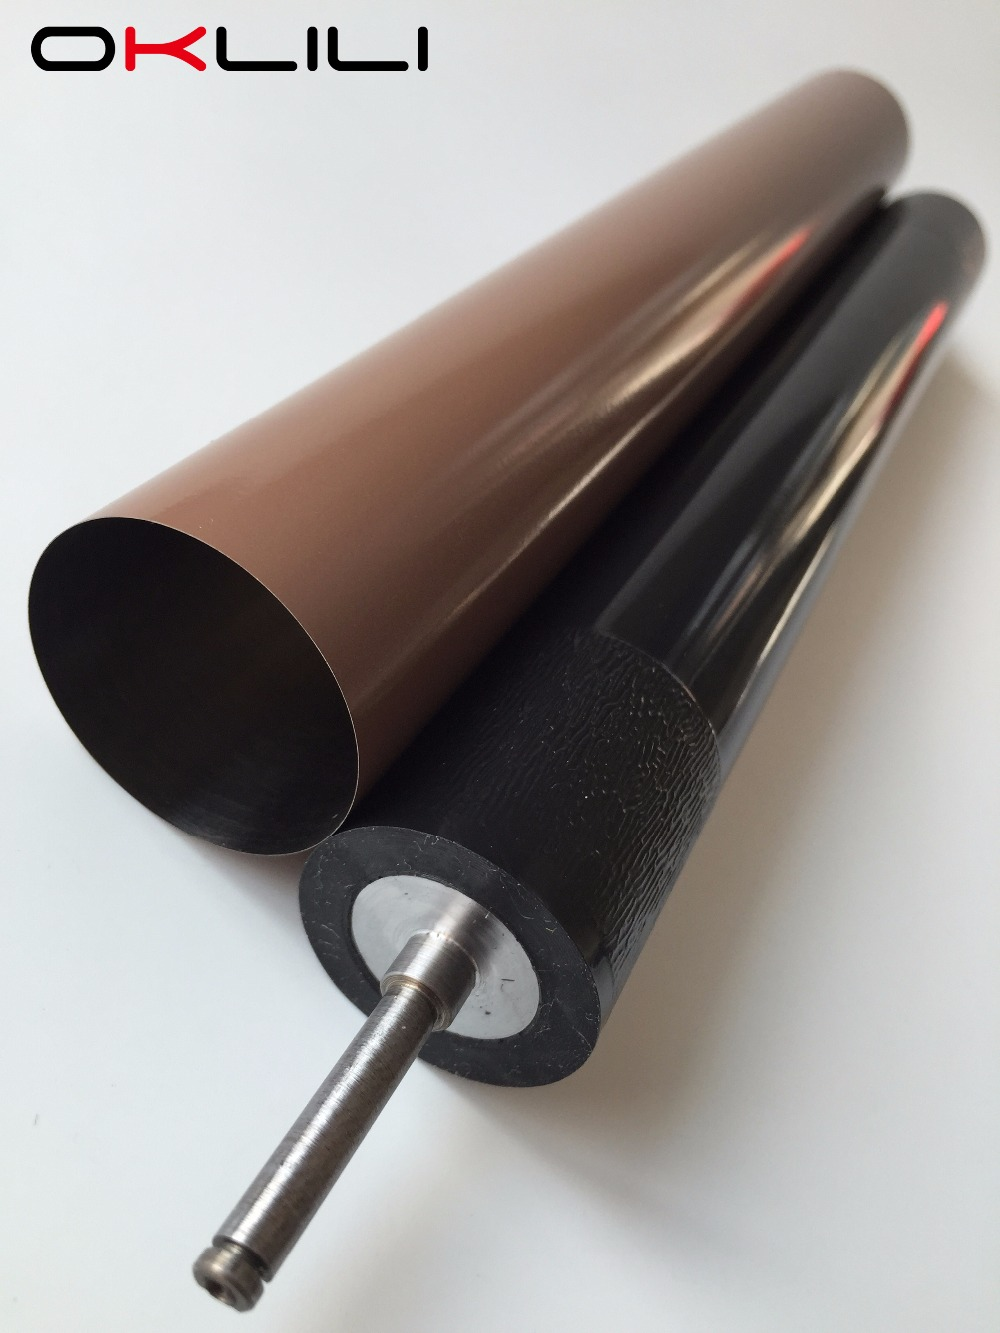 Fuser film sleeve + Pressure Roller for Brother HL-5440 5445 5450 6180 MFC-8510 8520 8710 8810 8910 8950 DCP-8110 8150 8155 8250